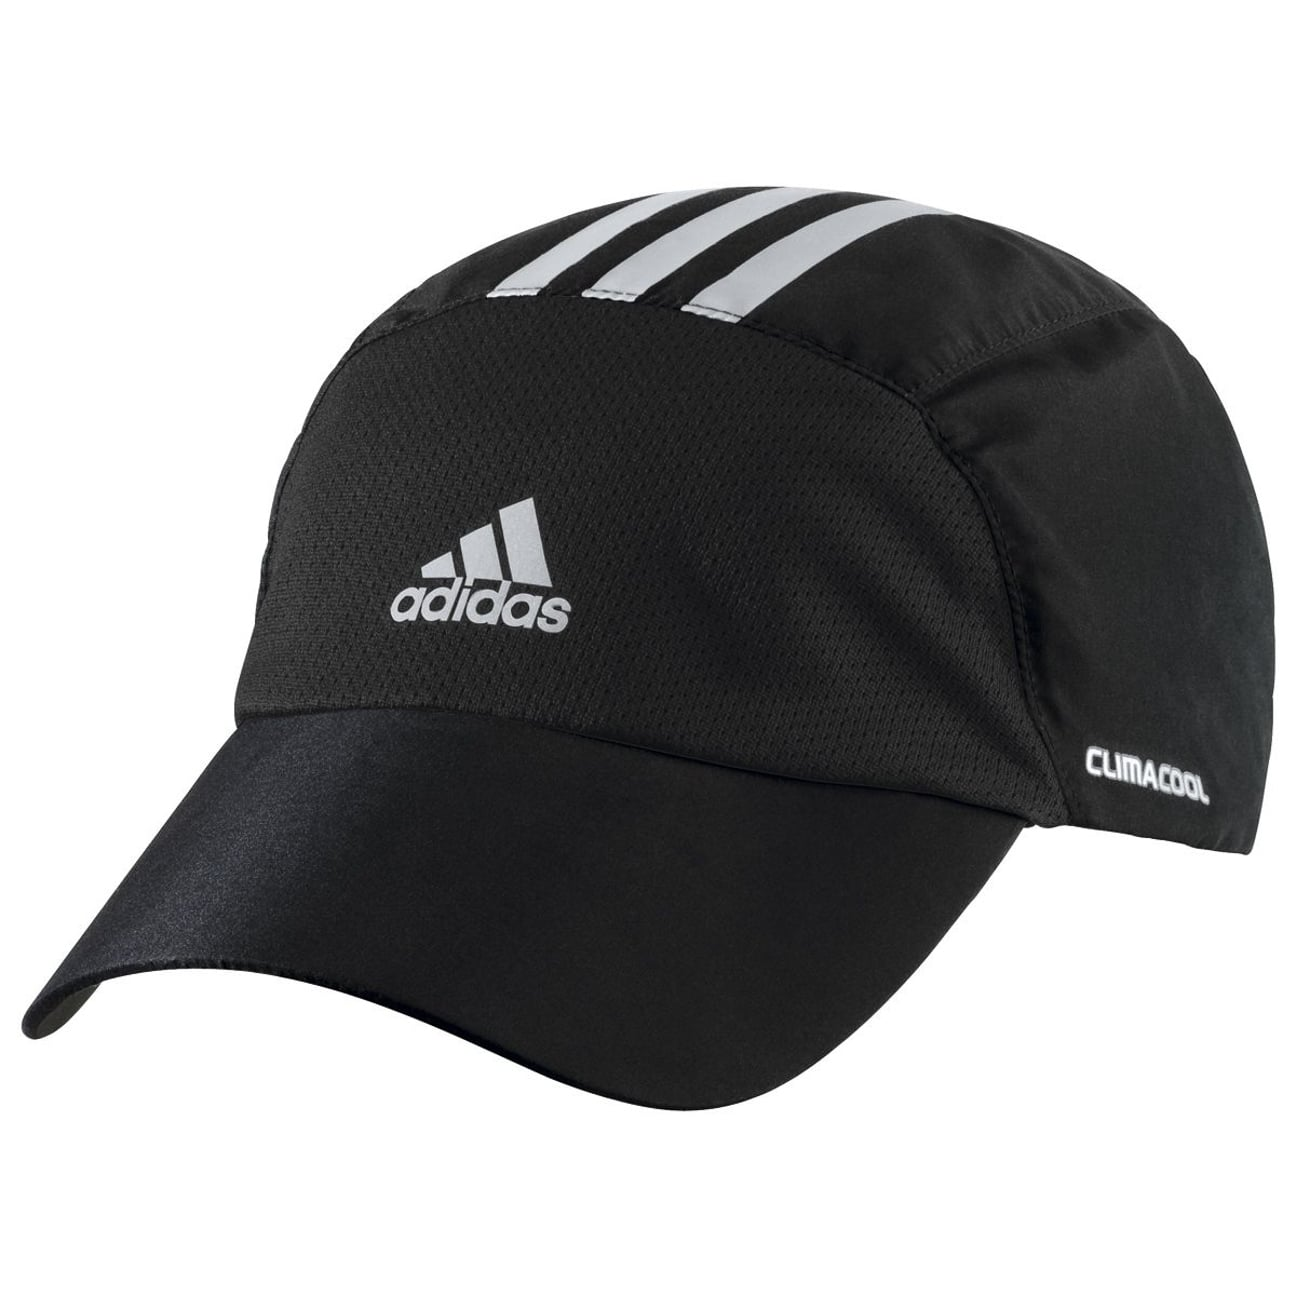 3s Climacool Cap By Adidas Eur 19 95 Gt Hats Caps